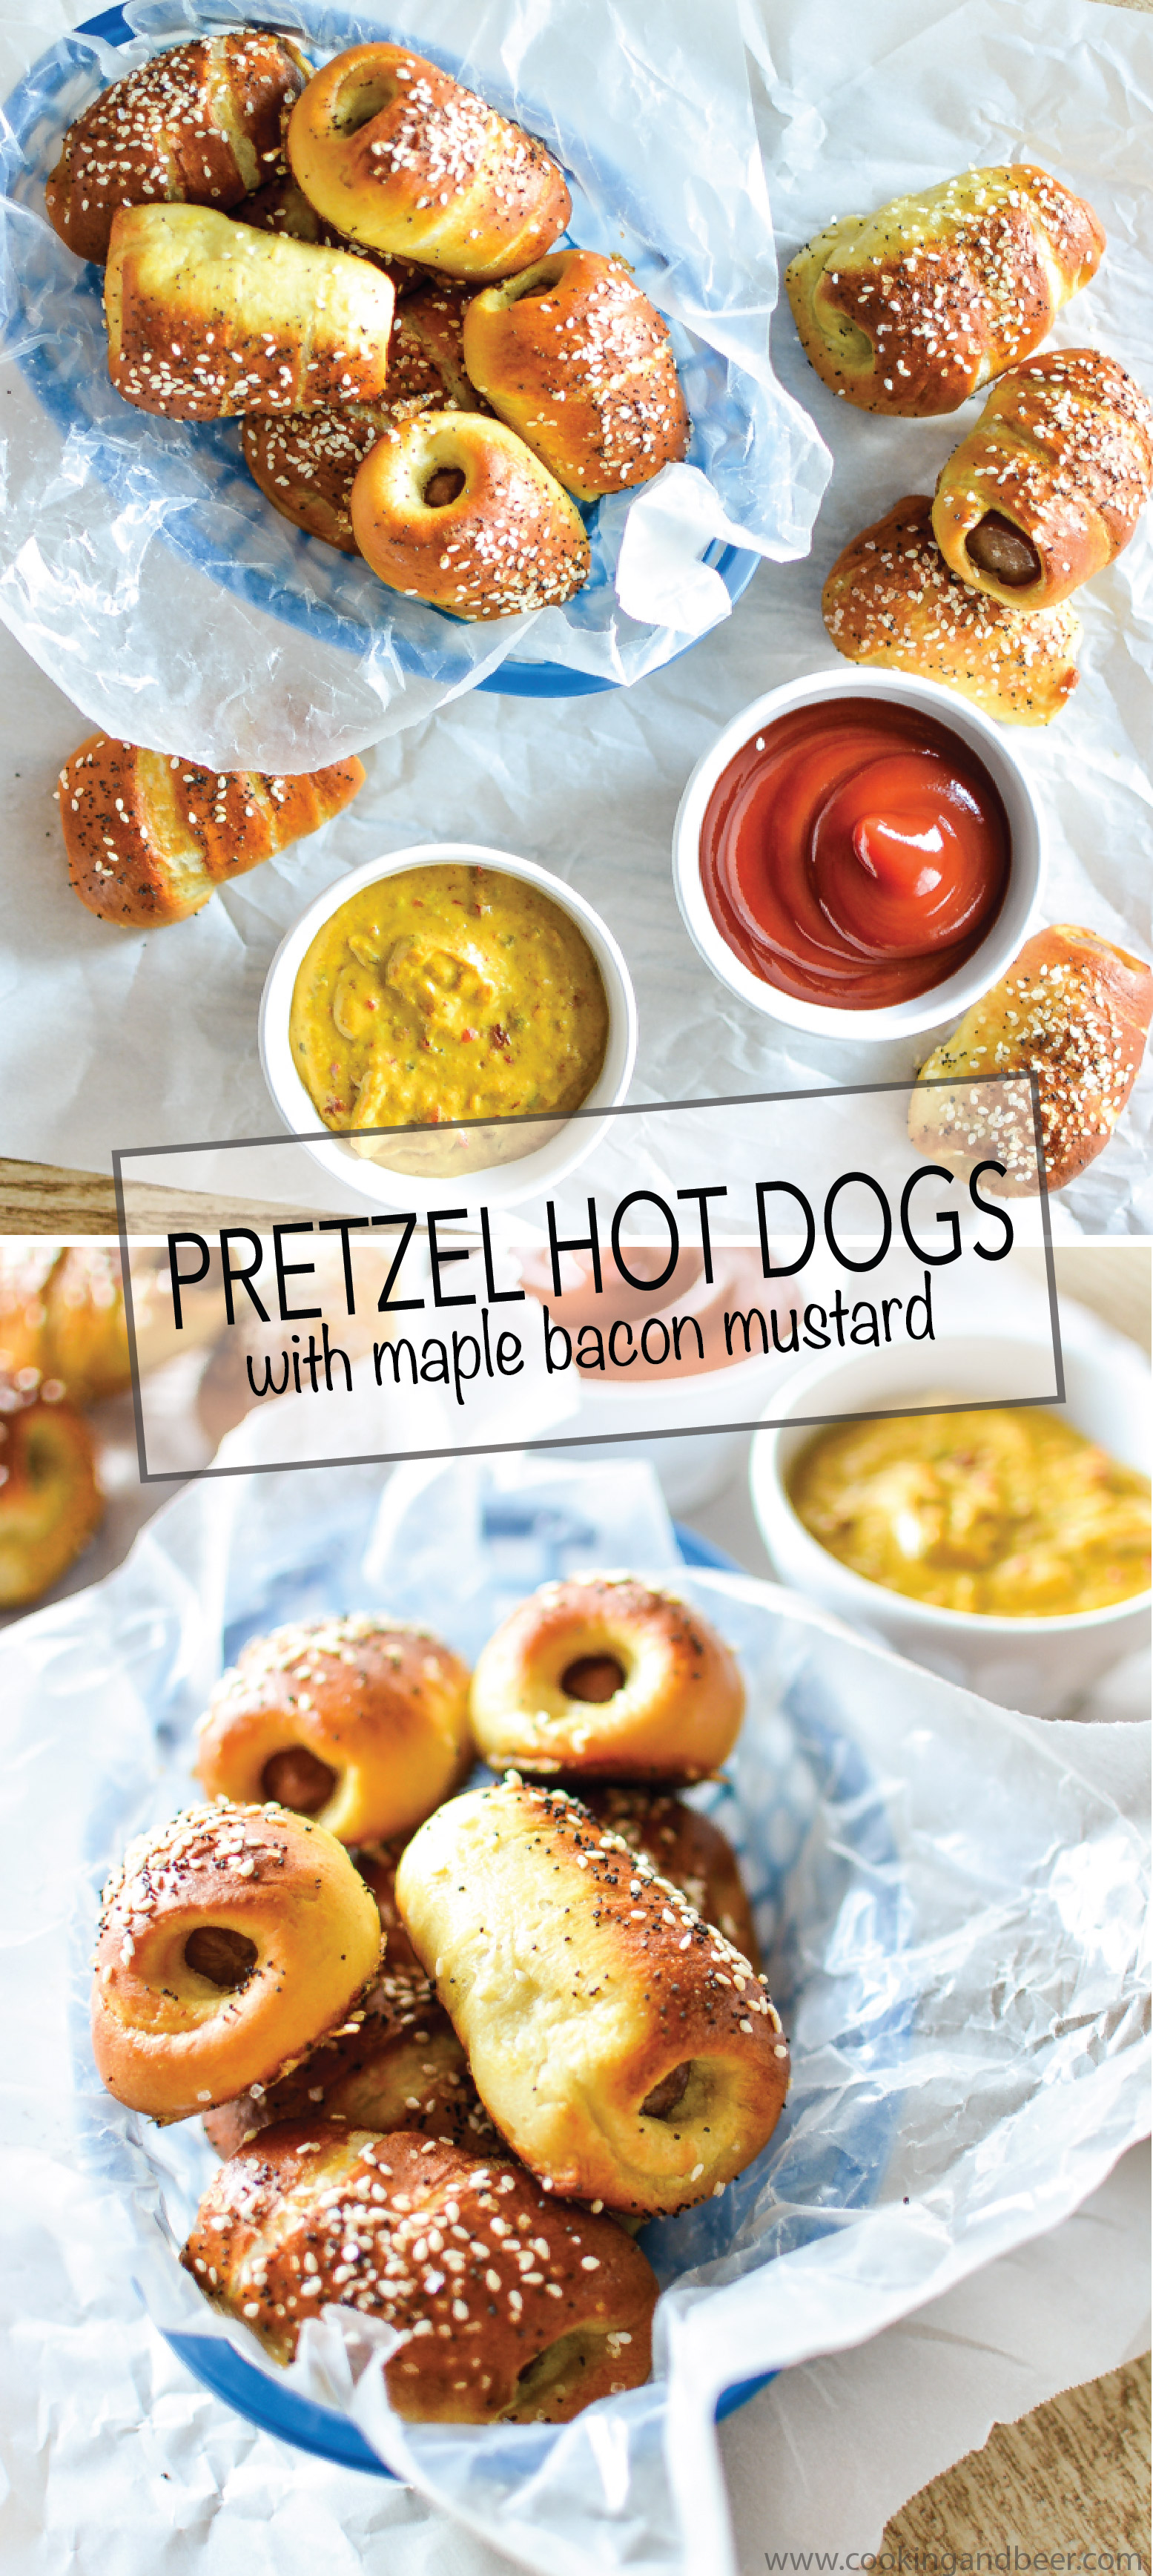 Pretzel Hot Dogs with Maple Bacon Mustard are the perfect snack or appetizer recipe with the perfect dipping sauce!! | www.cookingandbeer.com